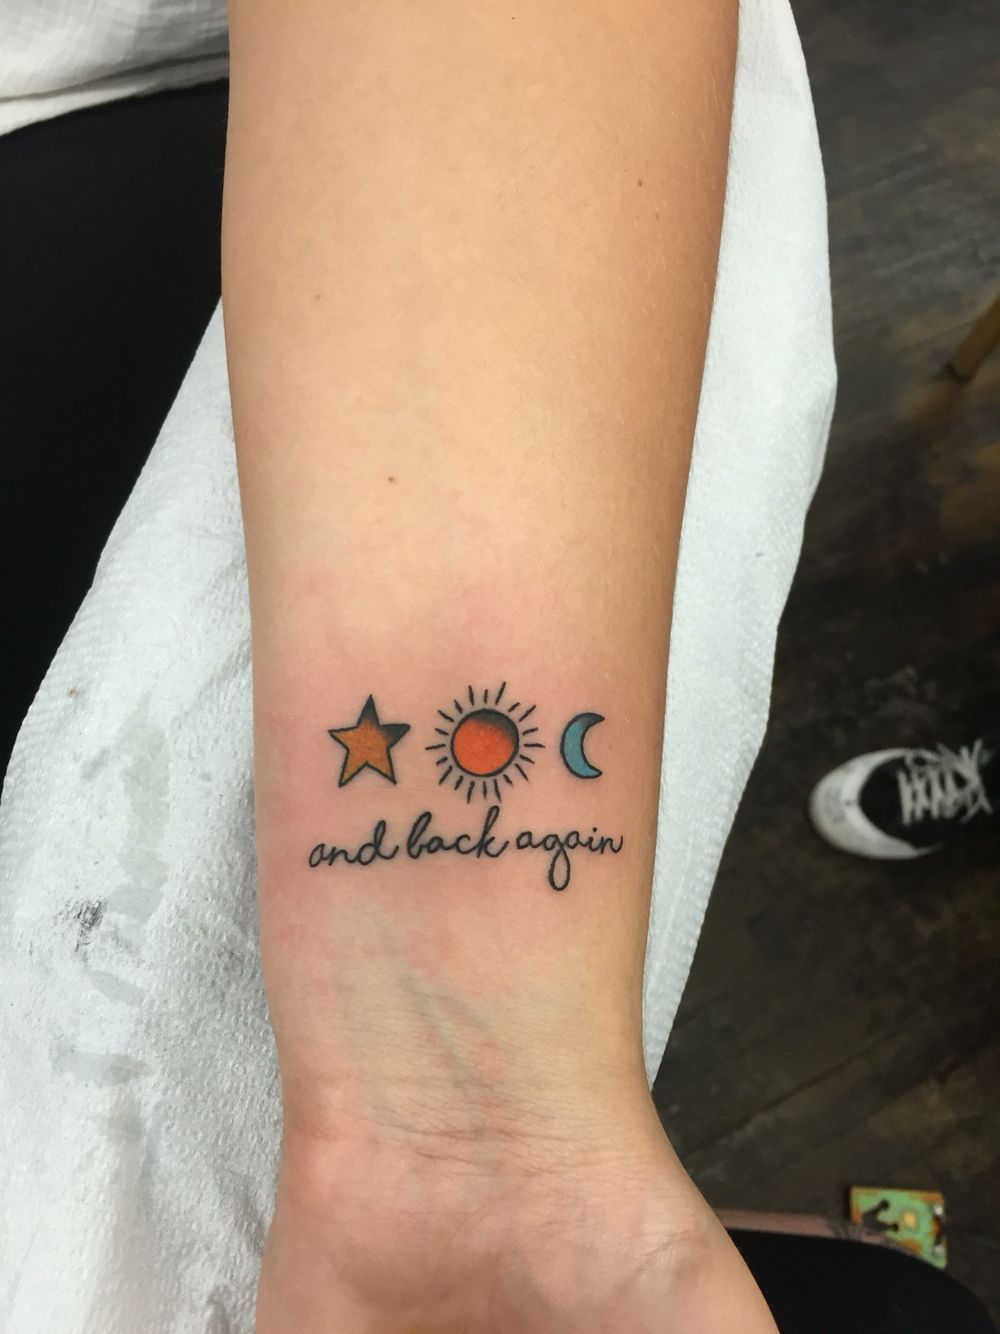 Memorial tattoo sun moon star tattoo (With images